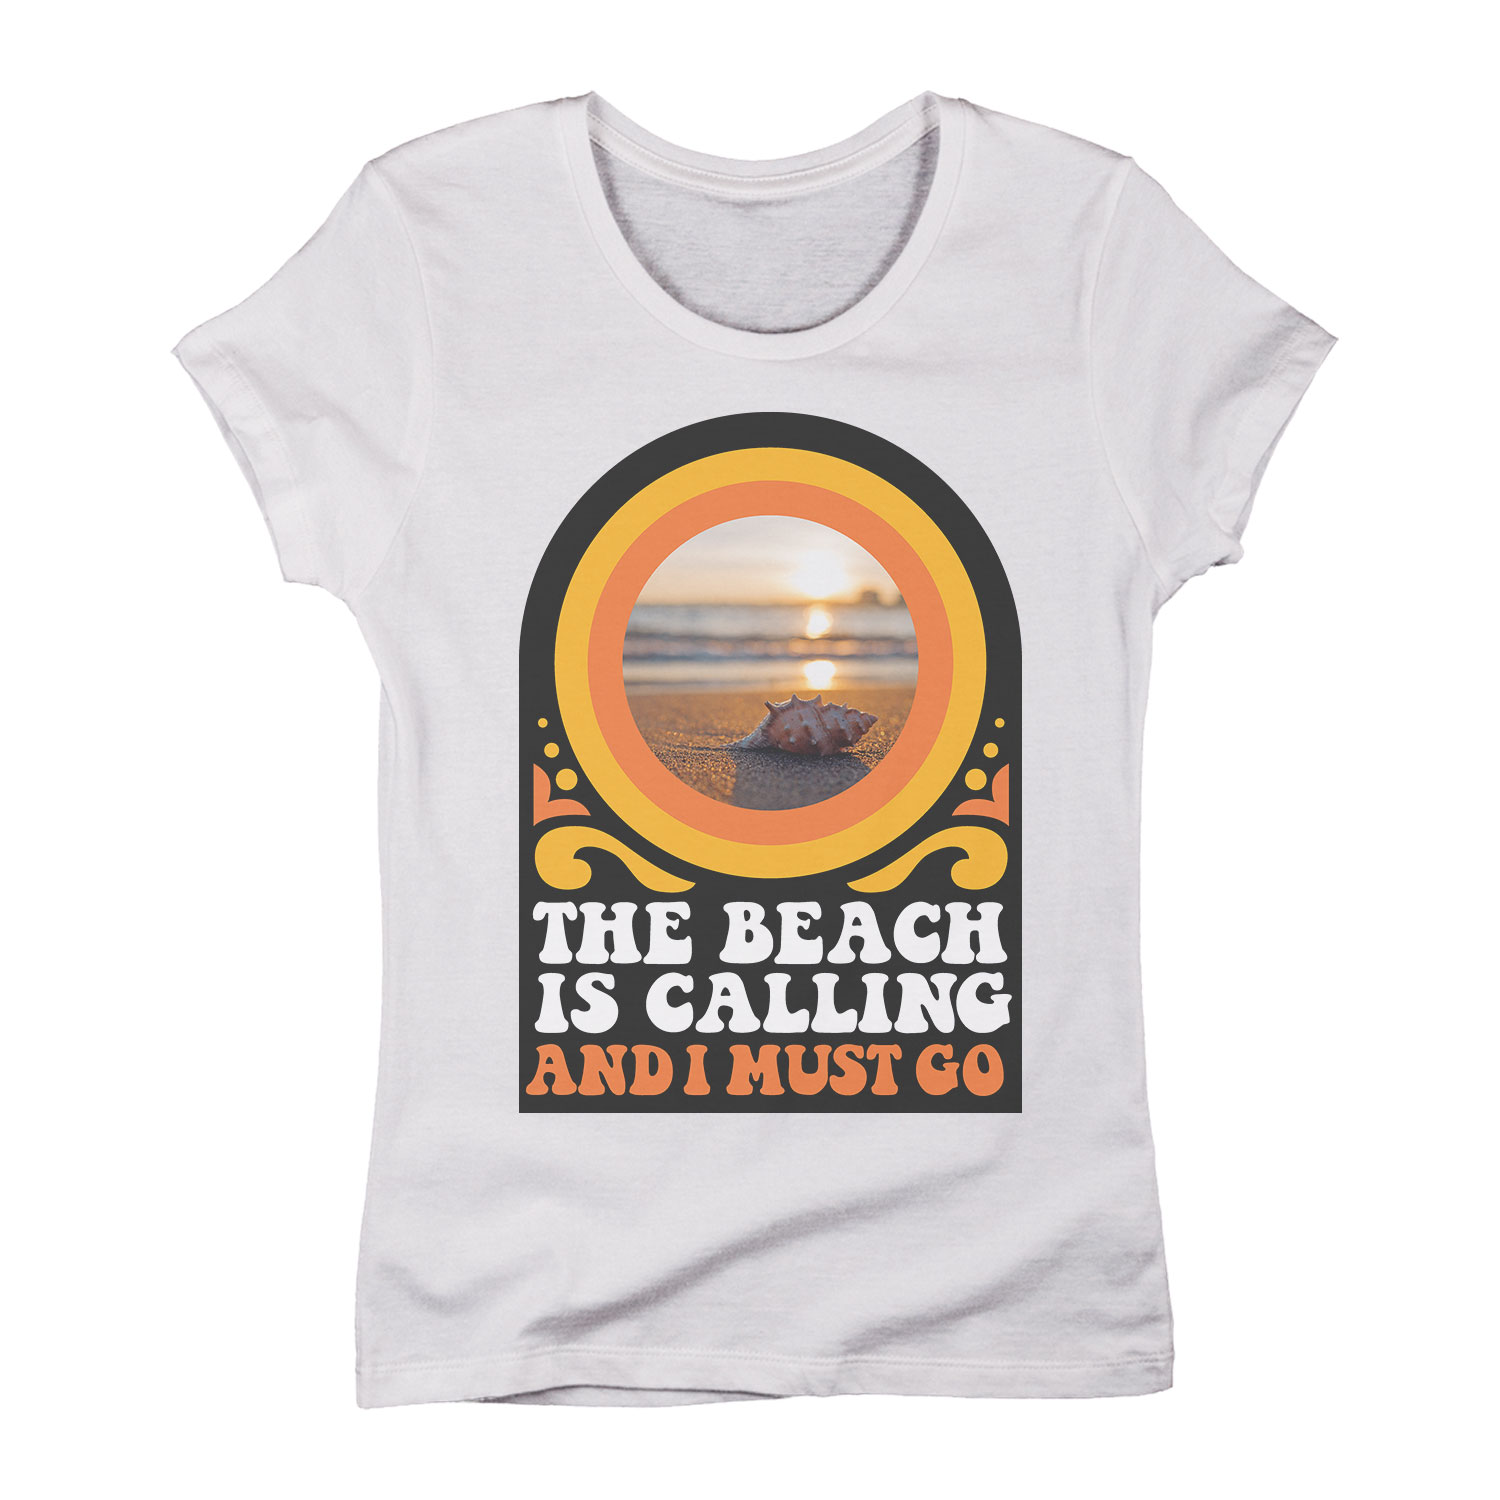 The Beach is Calling -Women LADIES SHORT SLEEVE TEE